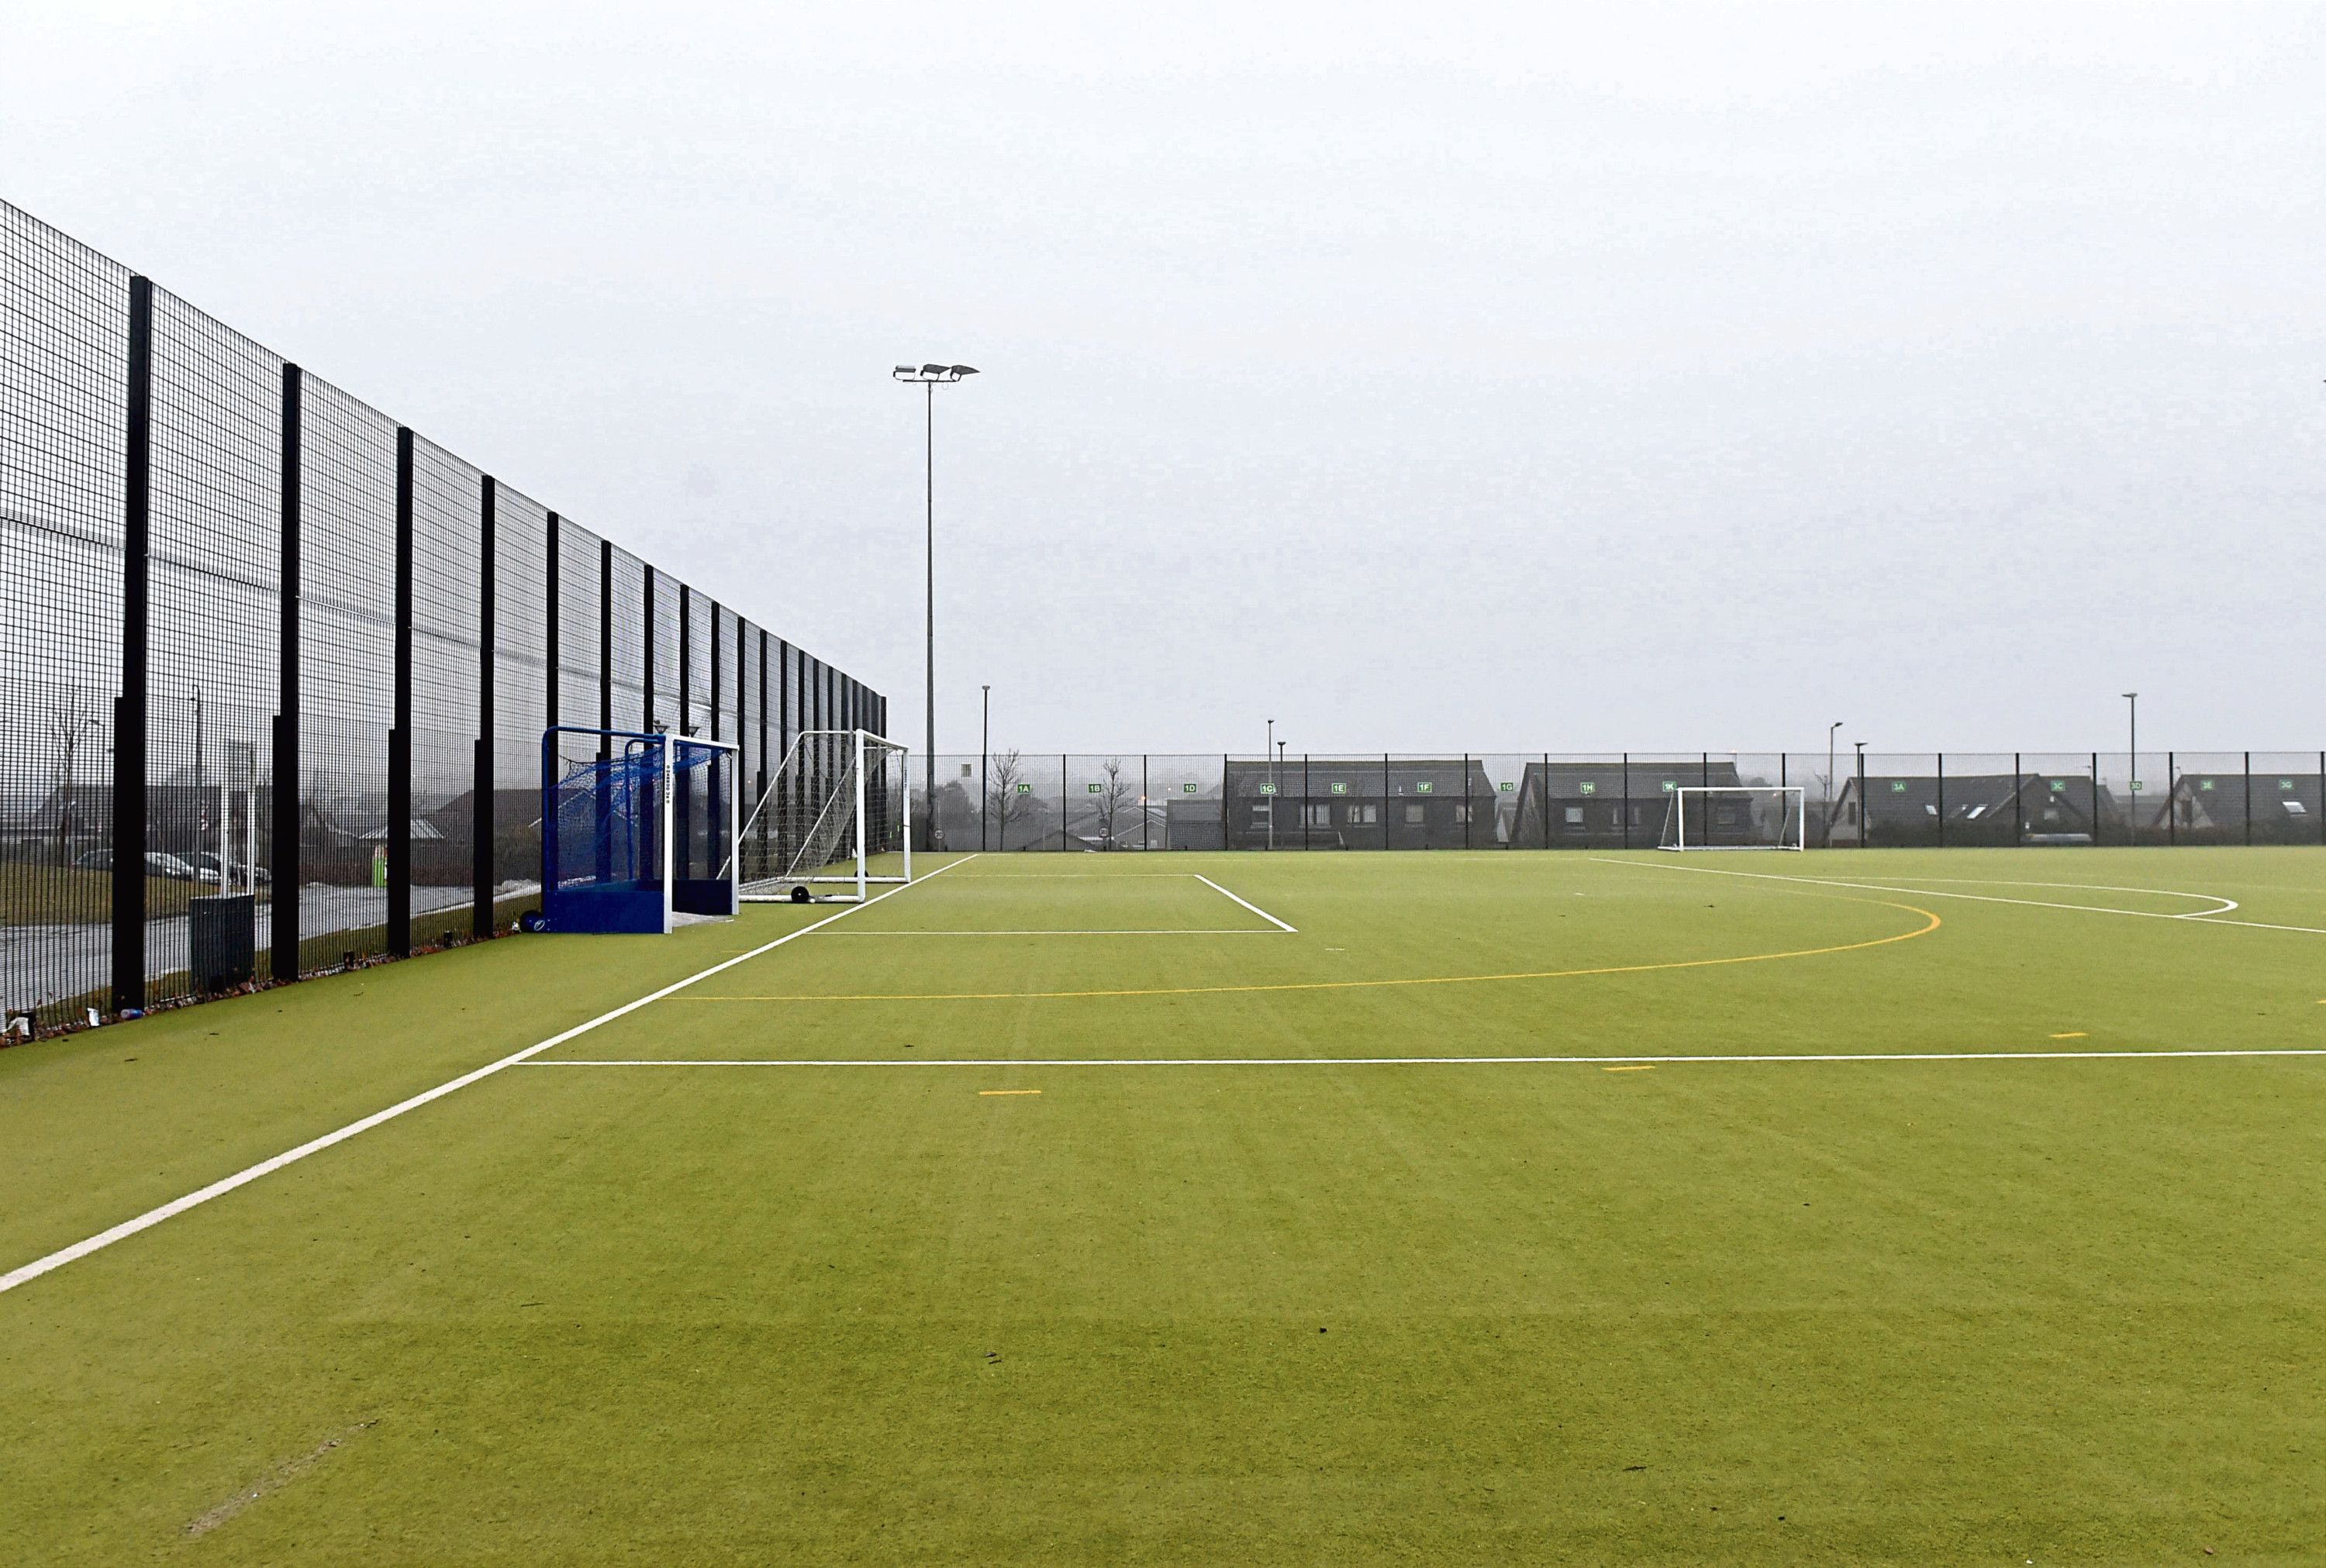 The 2g pitch is getting replaced in the summer